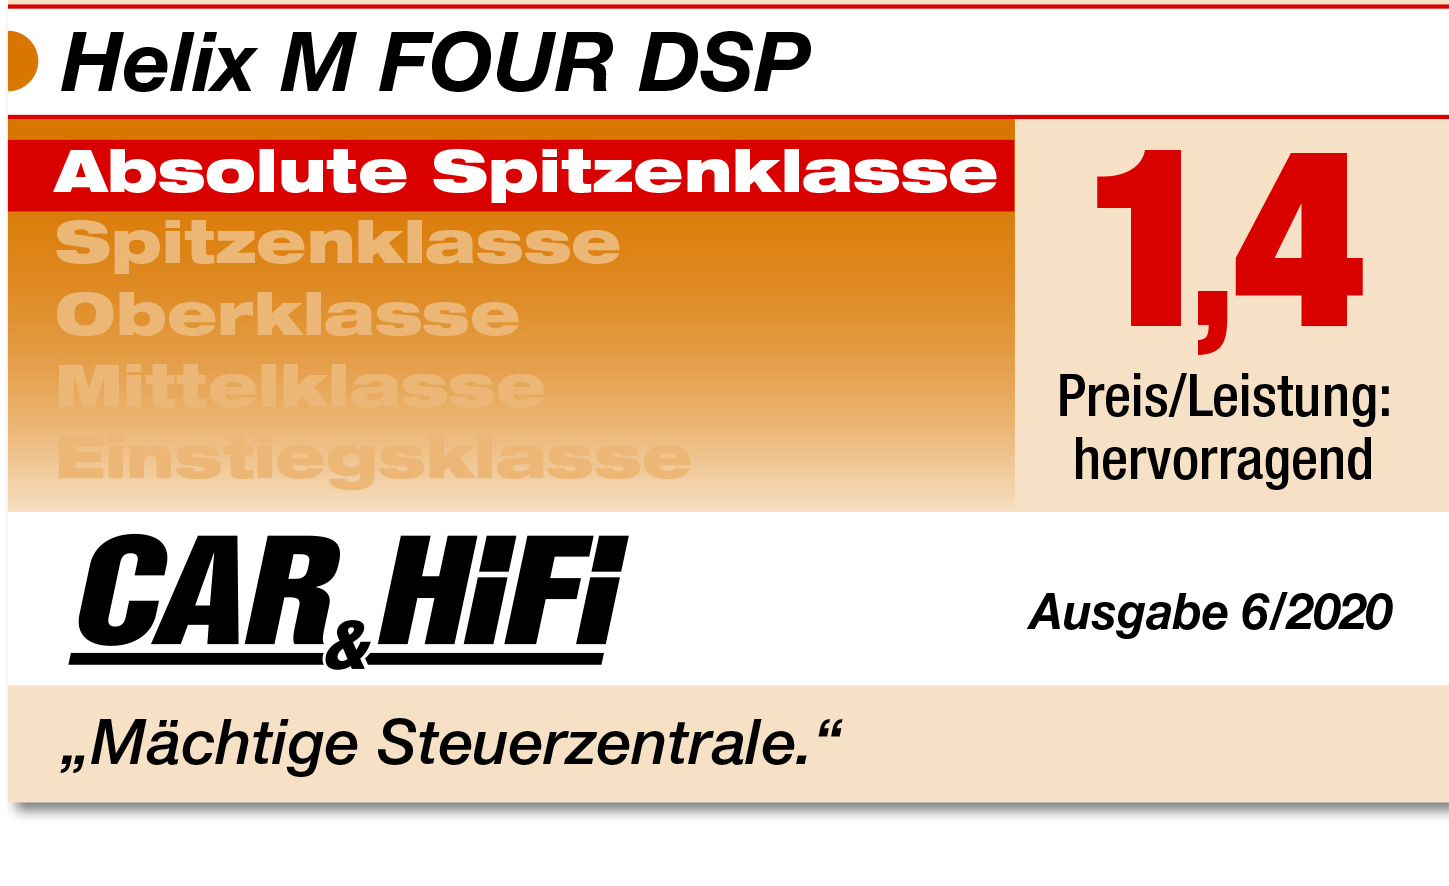 2020-06-Car-Hifi-Bewertung-HELIX-M-FOUR-DSP